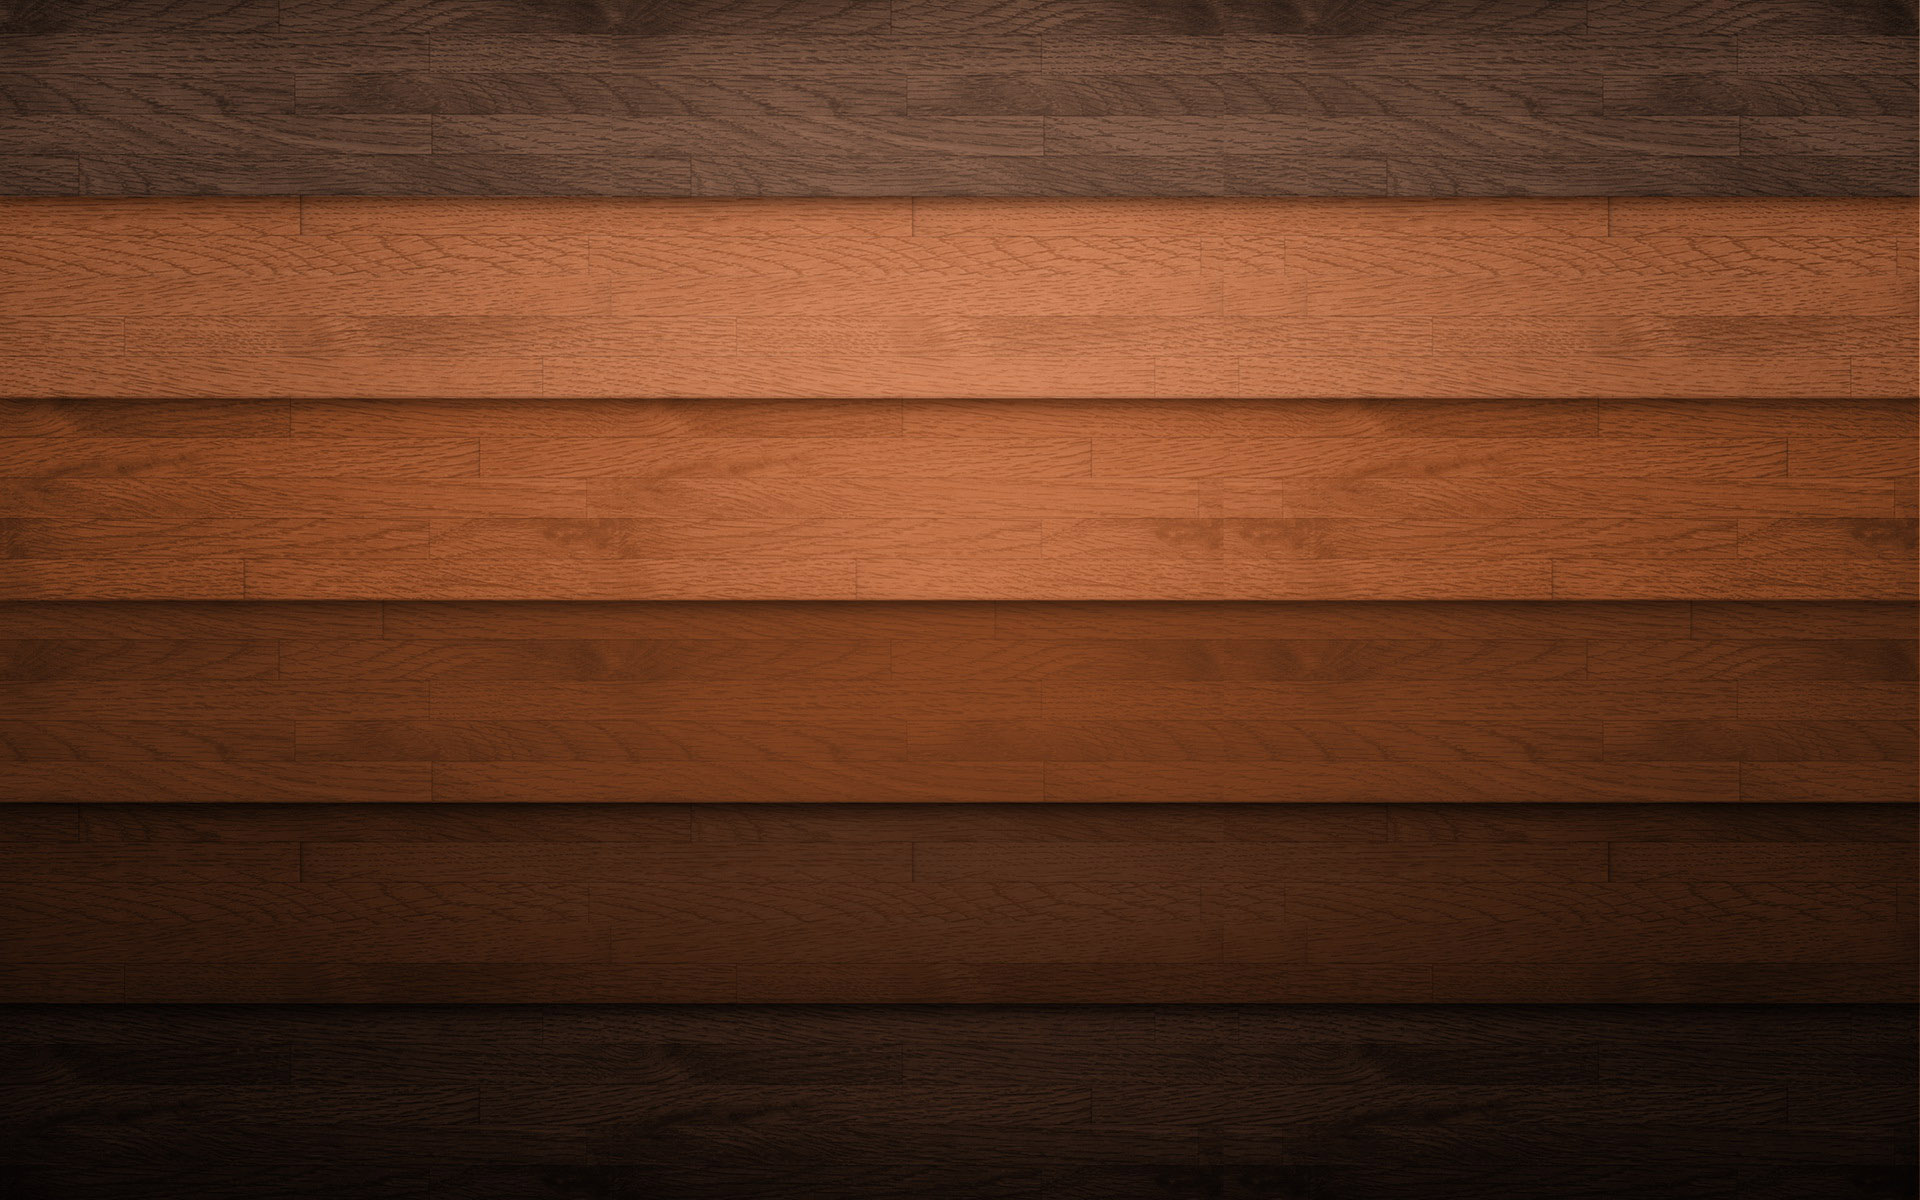 download-wooden-table-simple-wood-texture-cool-wallpaper-wooden